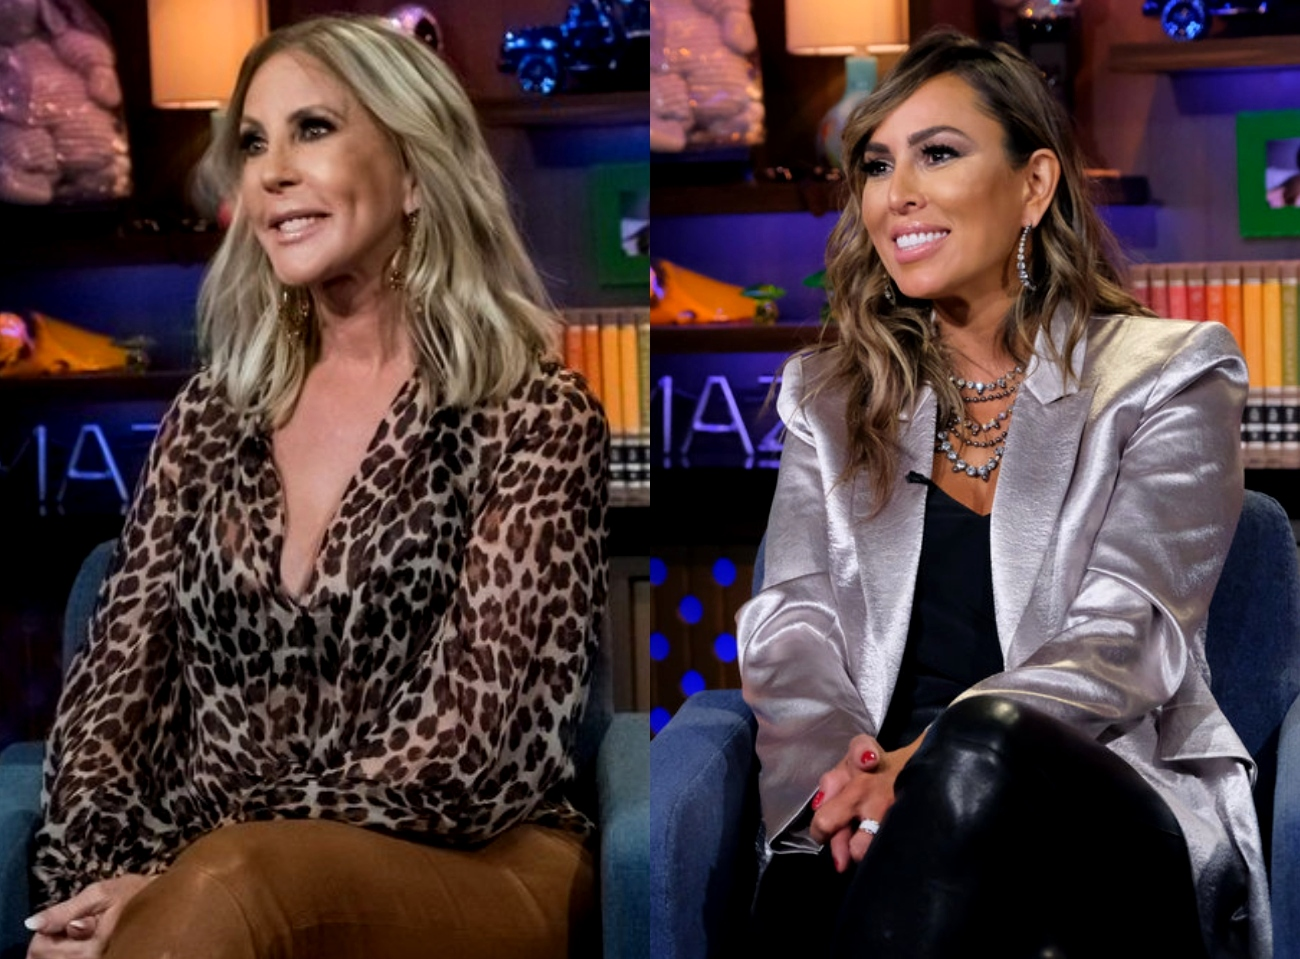 Vicki Gunvalson Accuses Kelly Dodd of Misbehaving to Keep RHOC Job! Slams Her for Hurtful Behavior and Demands She Take Accountability for Actions